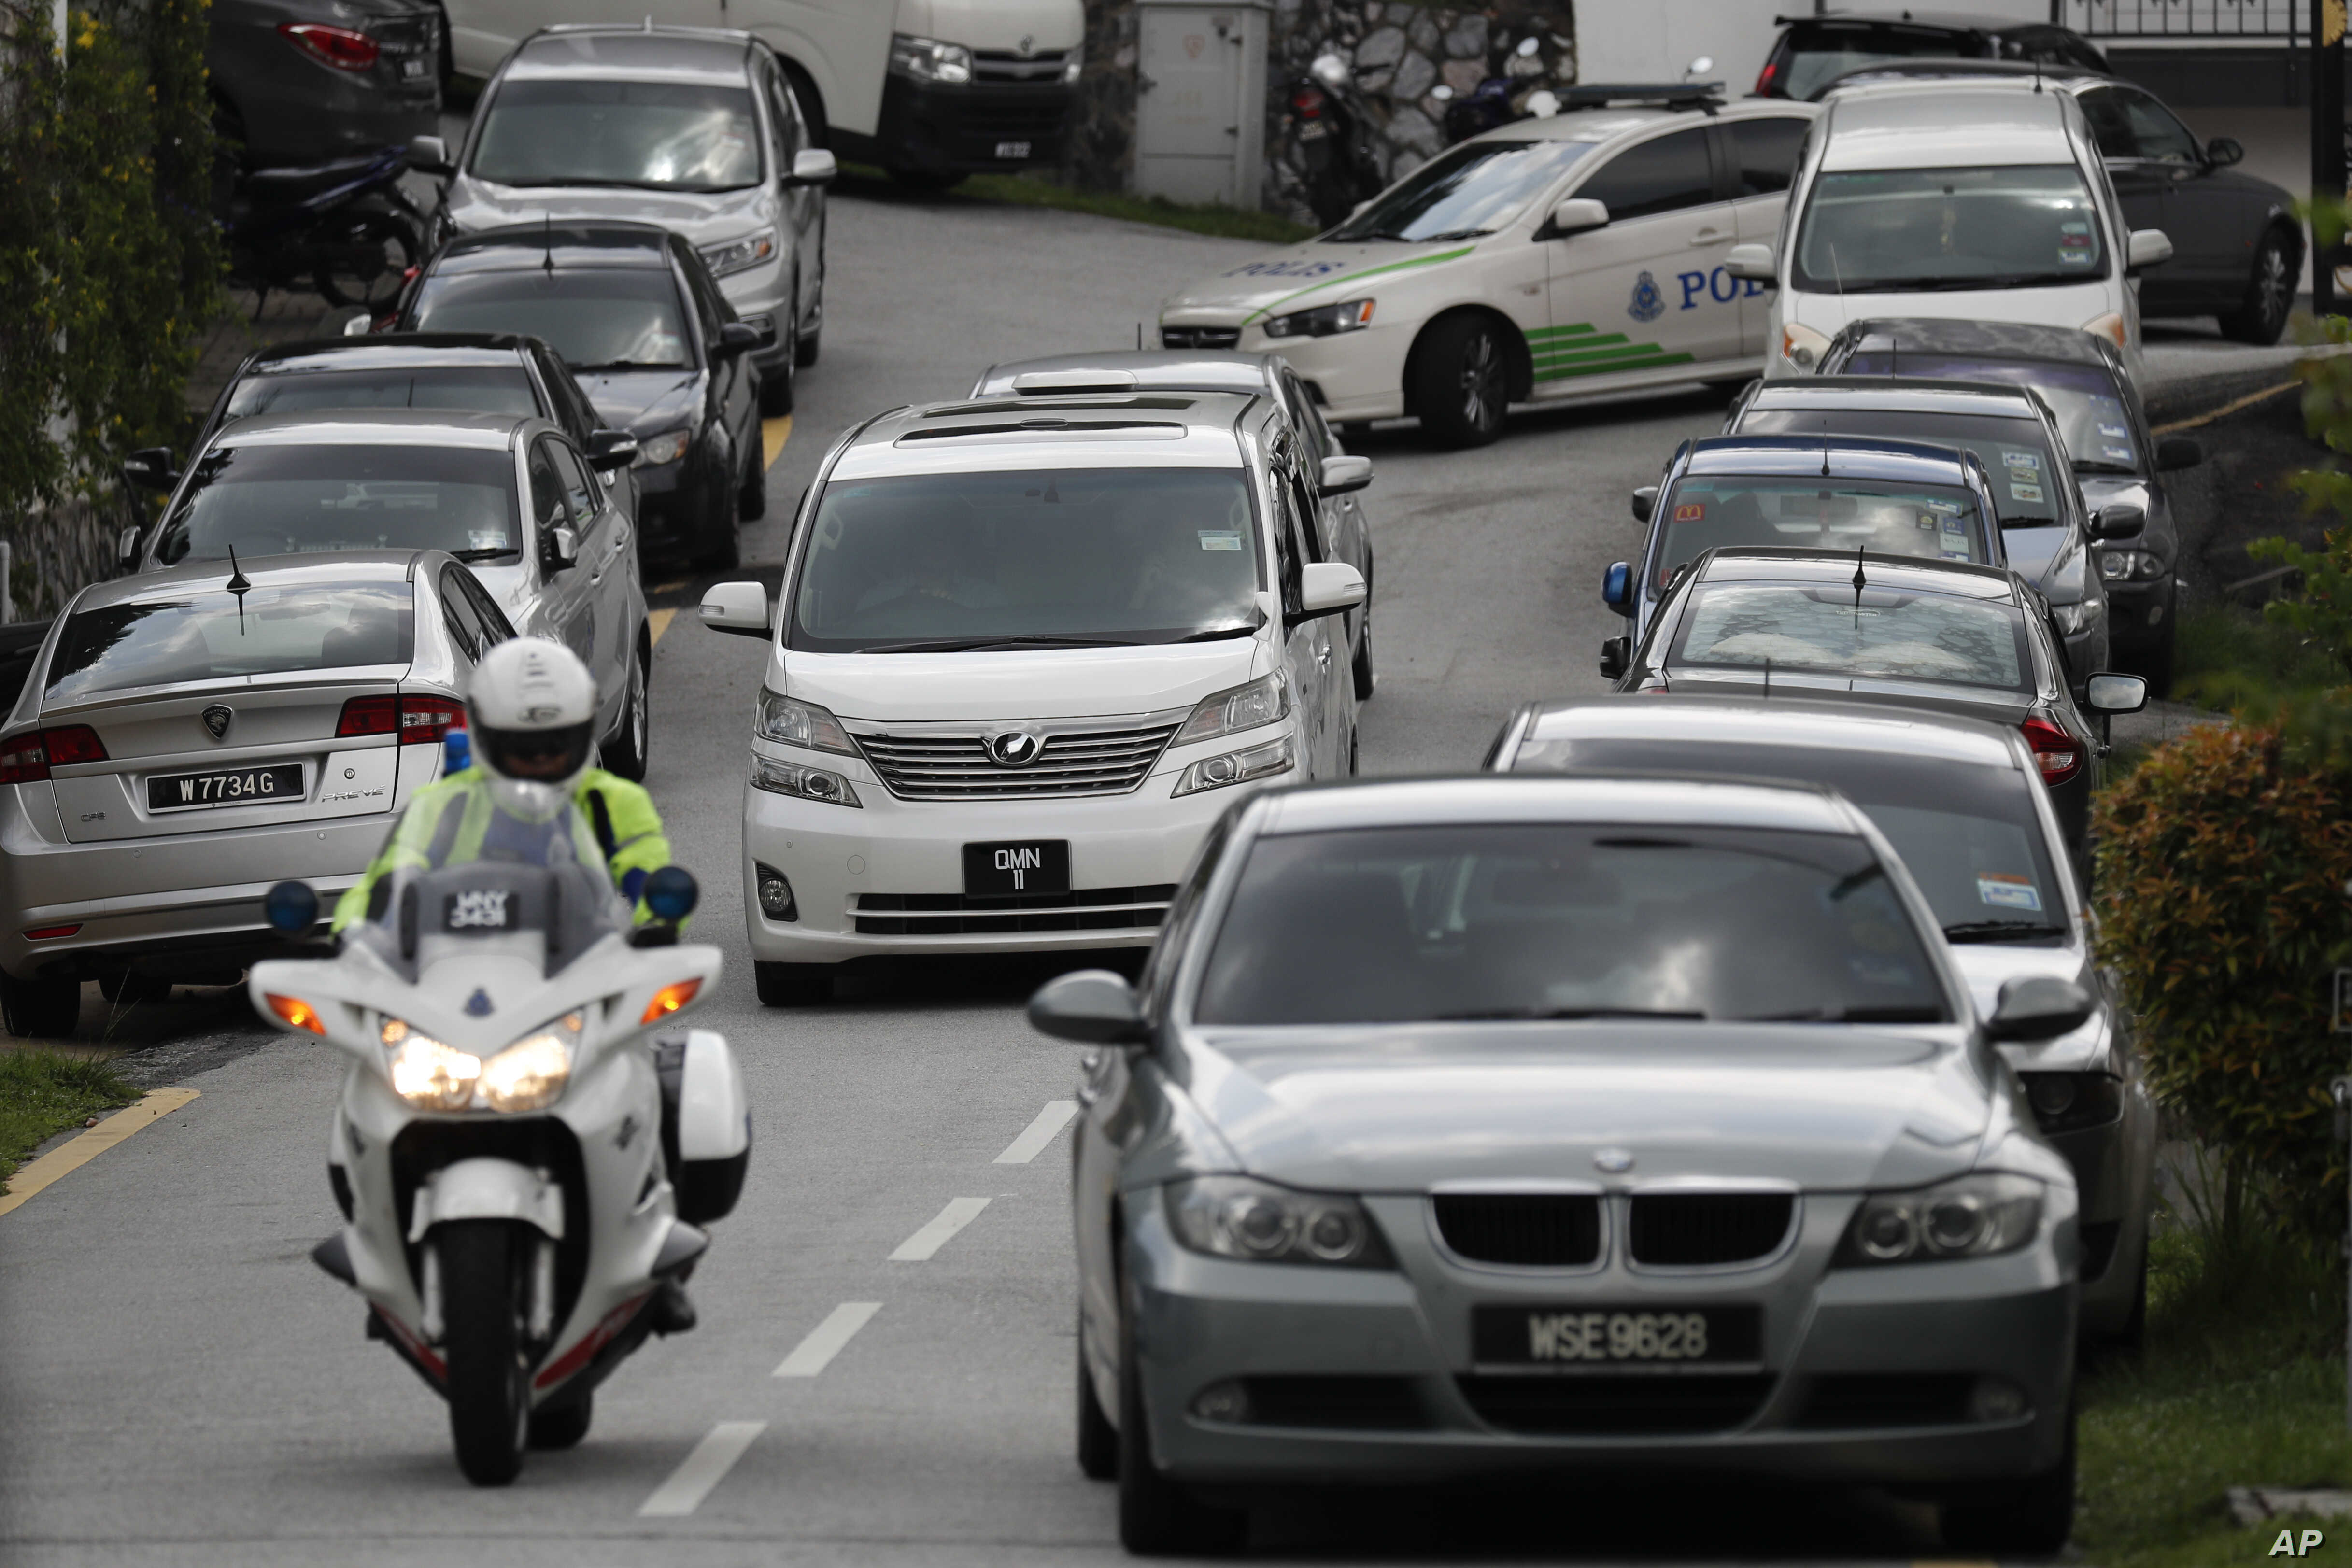 A car, center, believed to be carrying former Malaysian Prime Minister Najib Razak leaves his private resident in Kuala Lumpur, Malaysia, May 18, 2018. Malaysian police confiscated a few hundred designer handbags and dozens of suitcases containing ca...